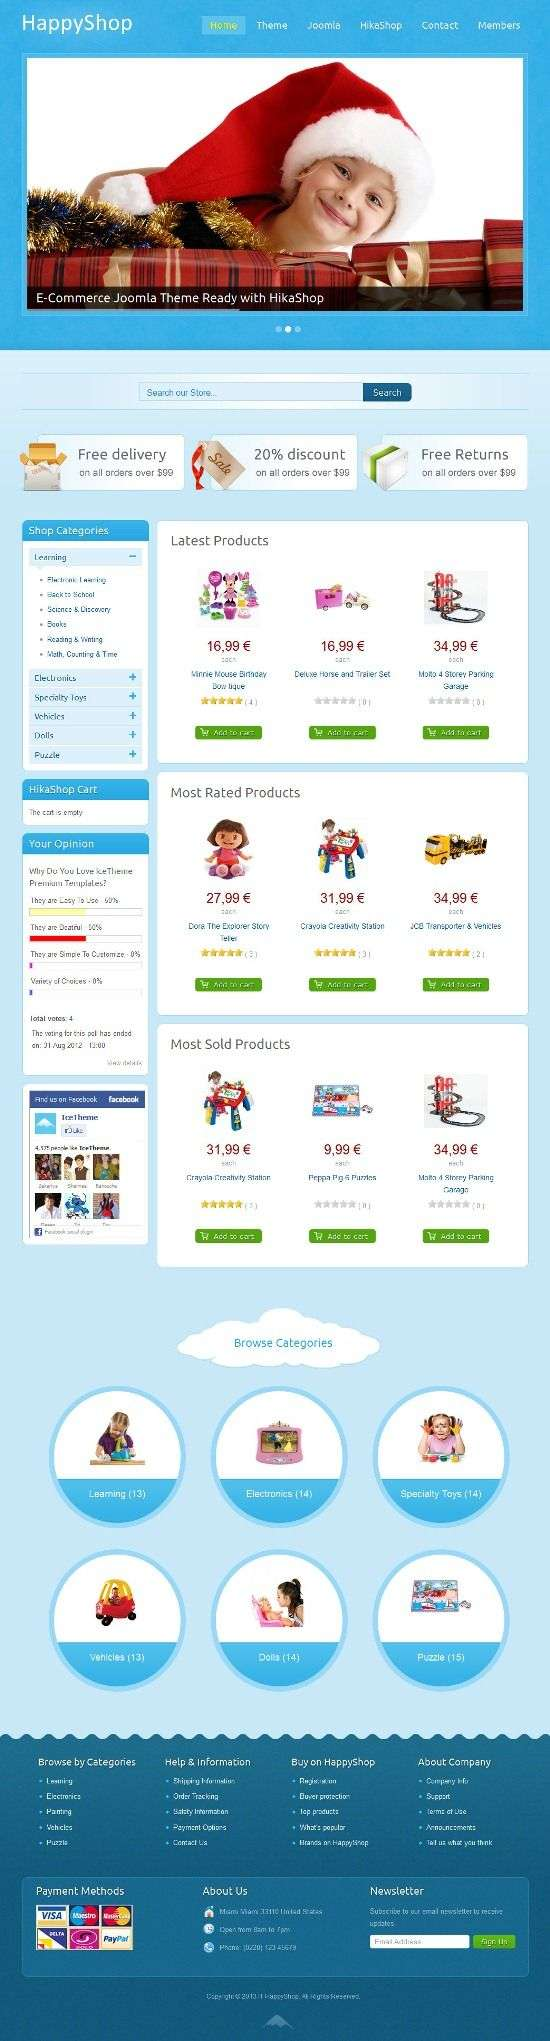 it-happyshop-icetheme-avjthemescom-01